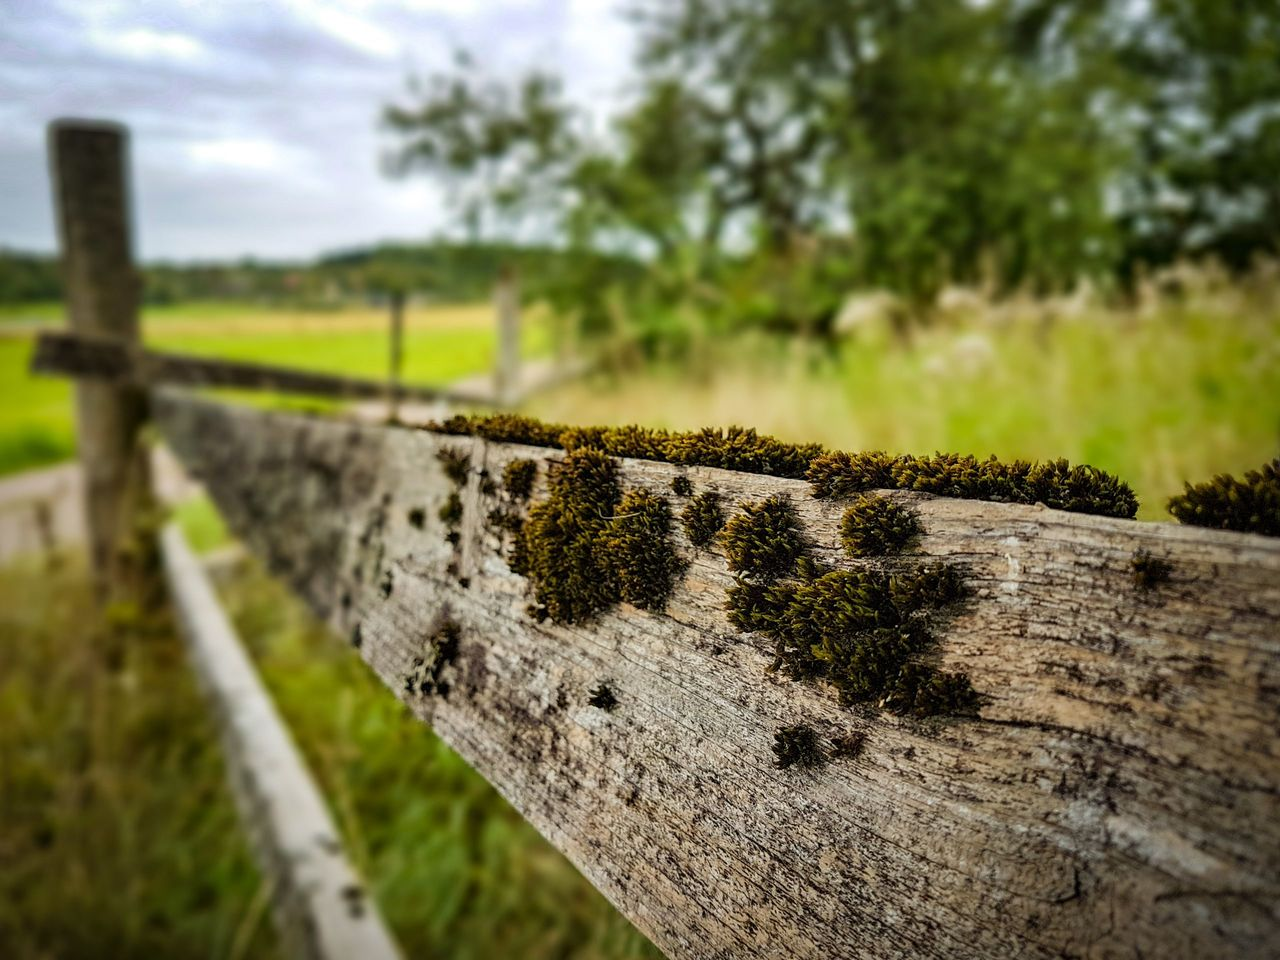 plant, wood - material, close-up, no people, day, focus on foreground, tree, nature, barrier, boundary, selective focus, outdoors, land, field, railing, fence, green color, weathered, safety, agriculture, bark